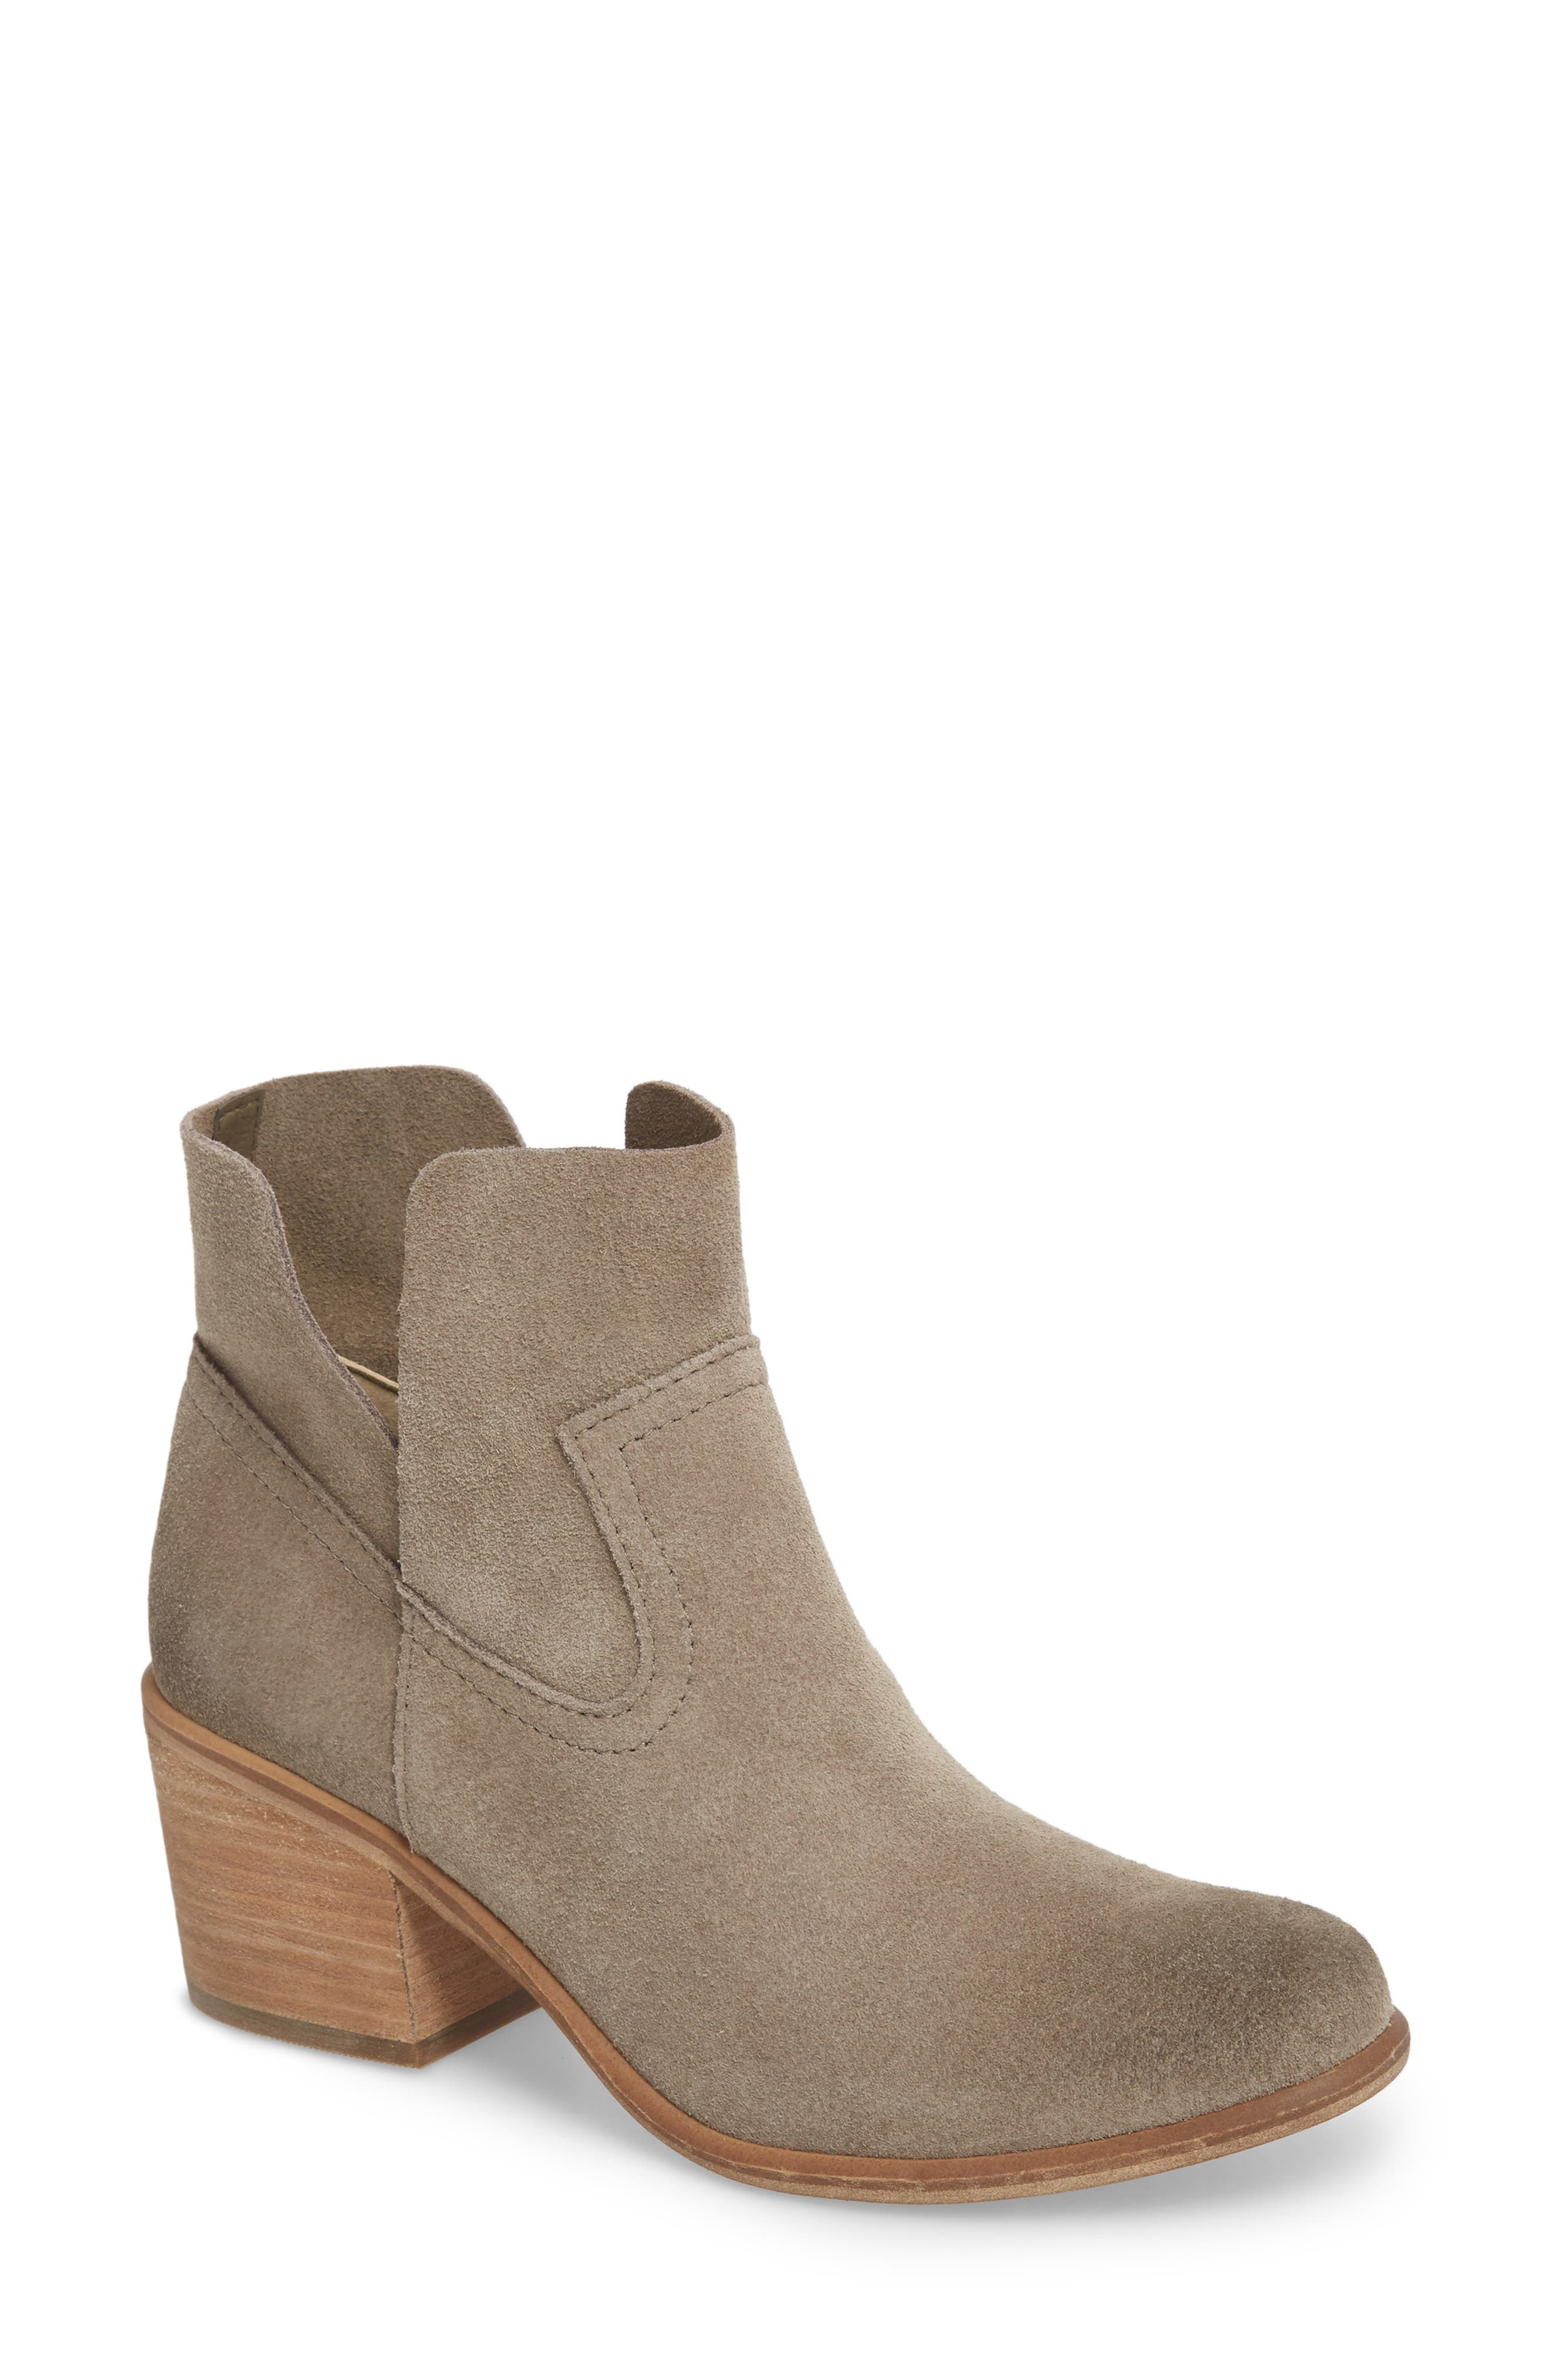 Brice Notched Bootie,                             Main thumbnail 1, color,                             Grey Suede